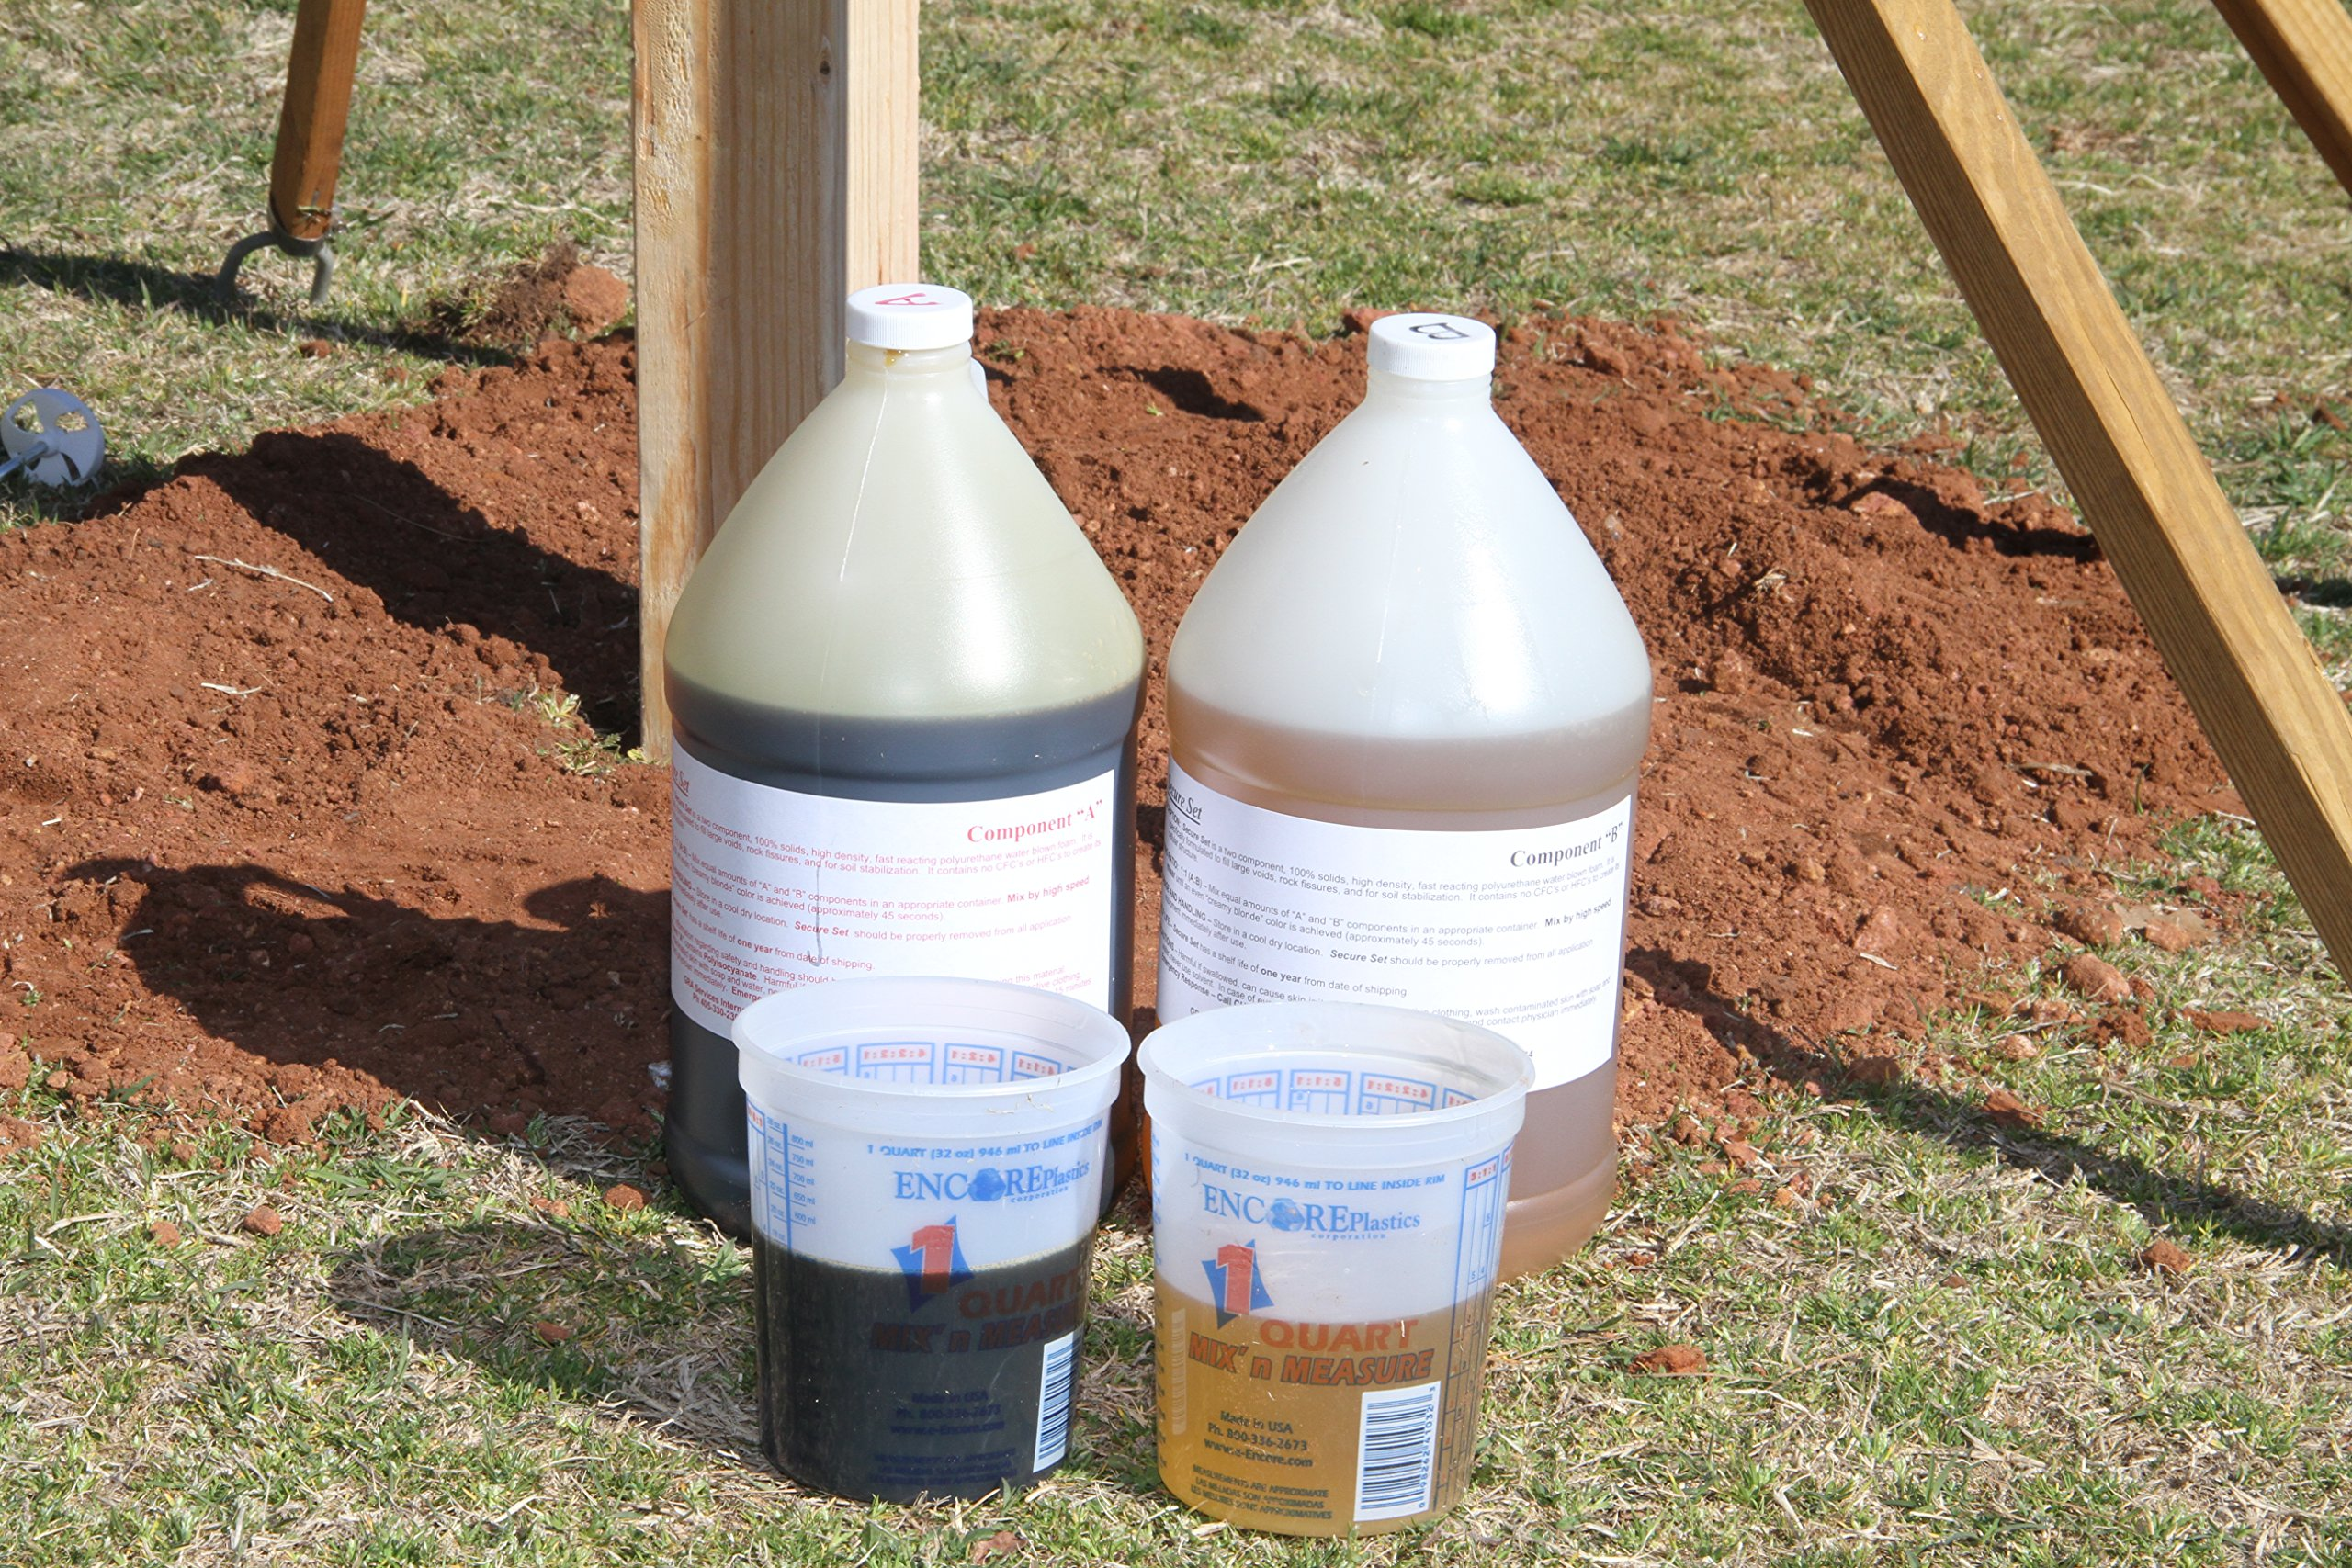 Secure Set - 10 Post Kit - Commercial Grade -2 Gallons.  Fast, Secure & Safe Concrete Alternative for Easy Fence Post Installation.